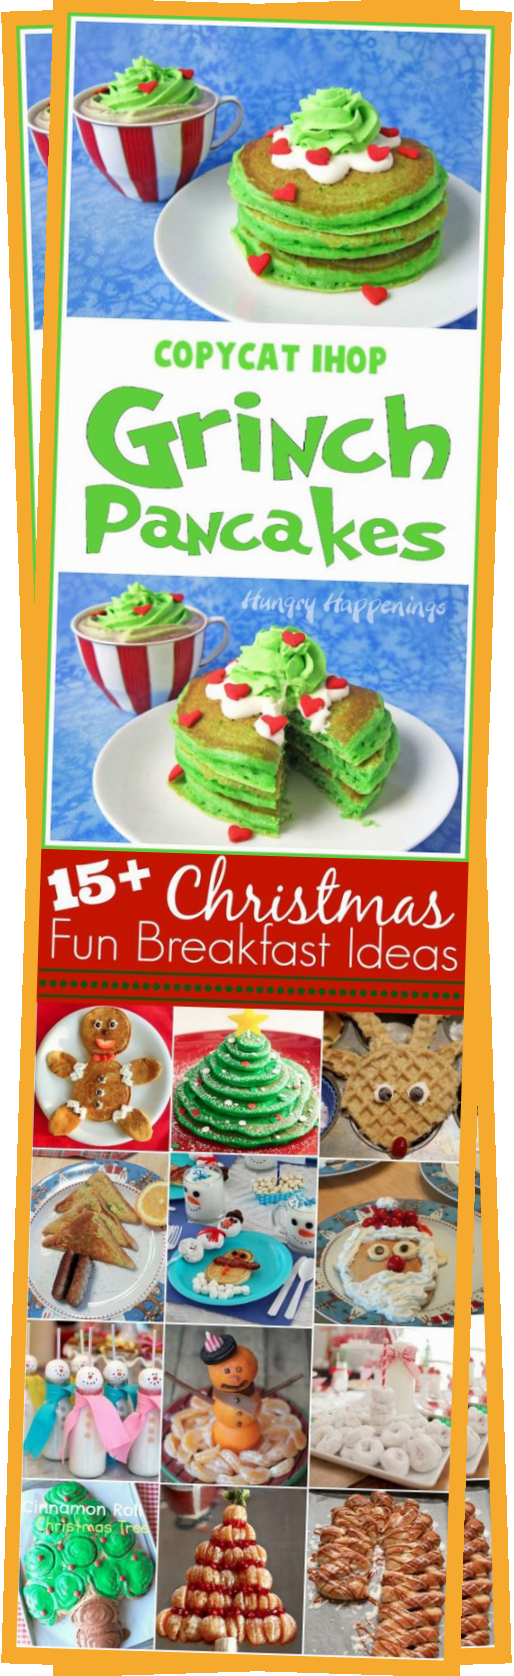 Copycat IHOP Grinch Pancakes Recipe  #travelquote #christmasmeal aroundtheworldideas #newhomefortheholidays #christmasapartment #holidaygoodness #holidayideas #travelideas #christmasideas